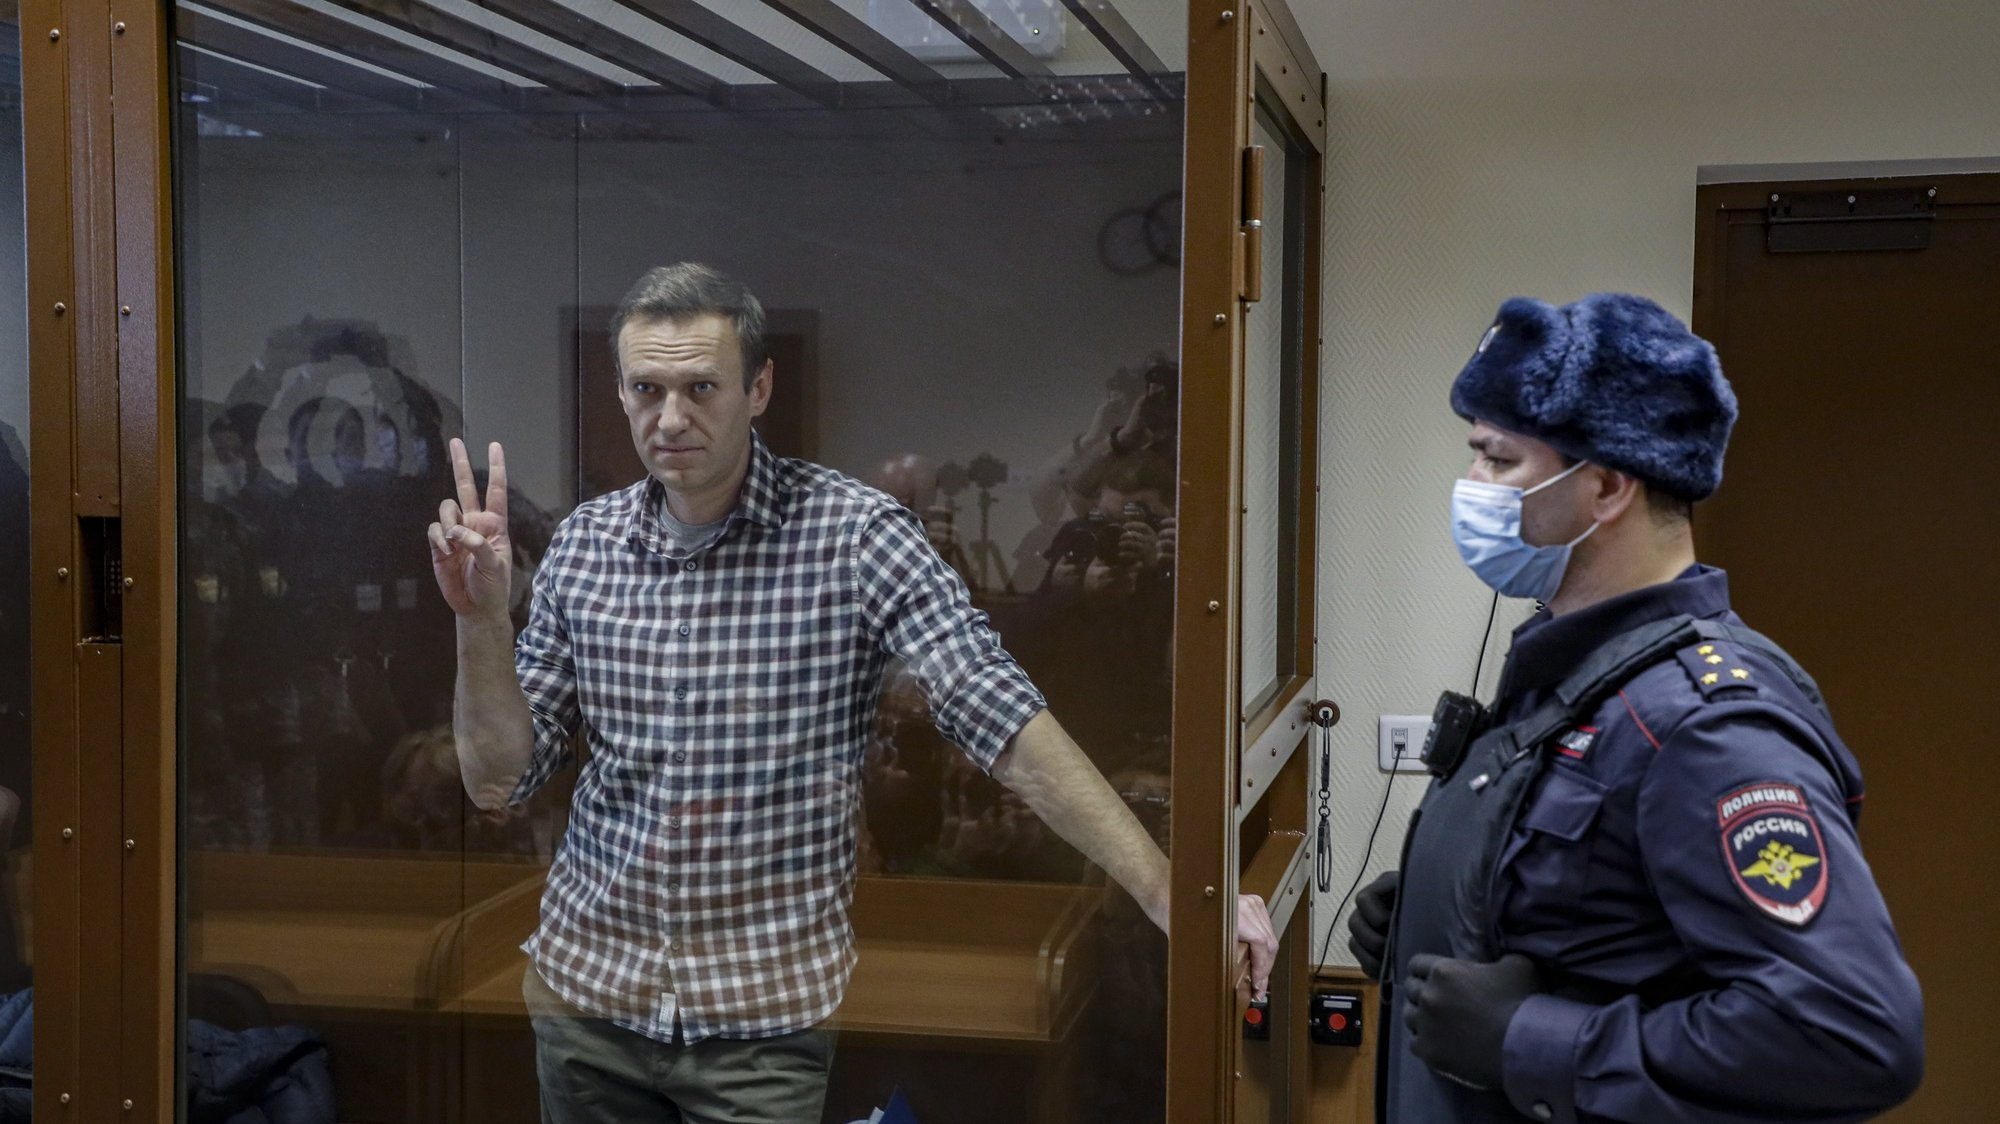 epa09108968 (FILE) Russian opposition leader Alexei Navalny gestures inside a glass cage prior to a hearing at the Babushkinsky District Court in Moscow, Russia, 20 February 2021 (reissued 31 March 2021). Russian opposition leader Alexei Navalny, who serves his 2,5 years sentence in a prison colony in the town of Pokrov in the Vladimir region, announced he is going on hunger strike in a protest of mistreatment in the prison.  EPA/YURI KOCHETKOV *** Local Caption *** 56711412